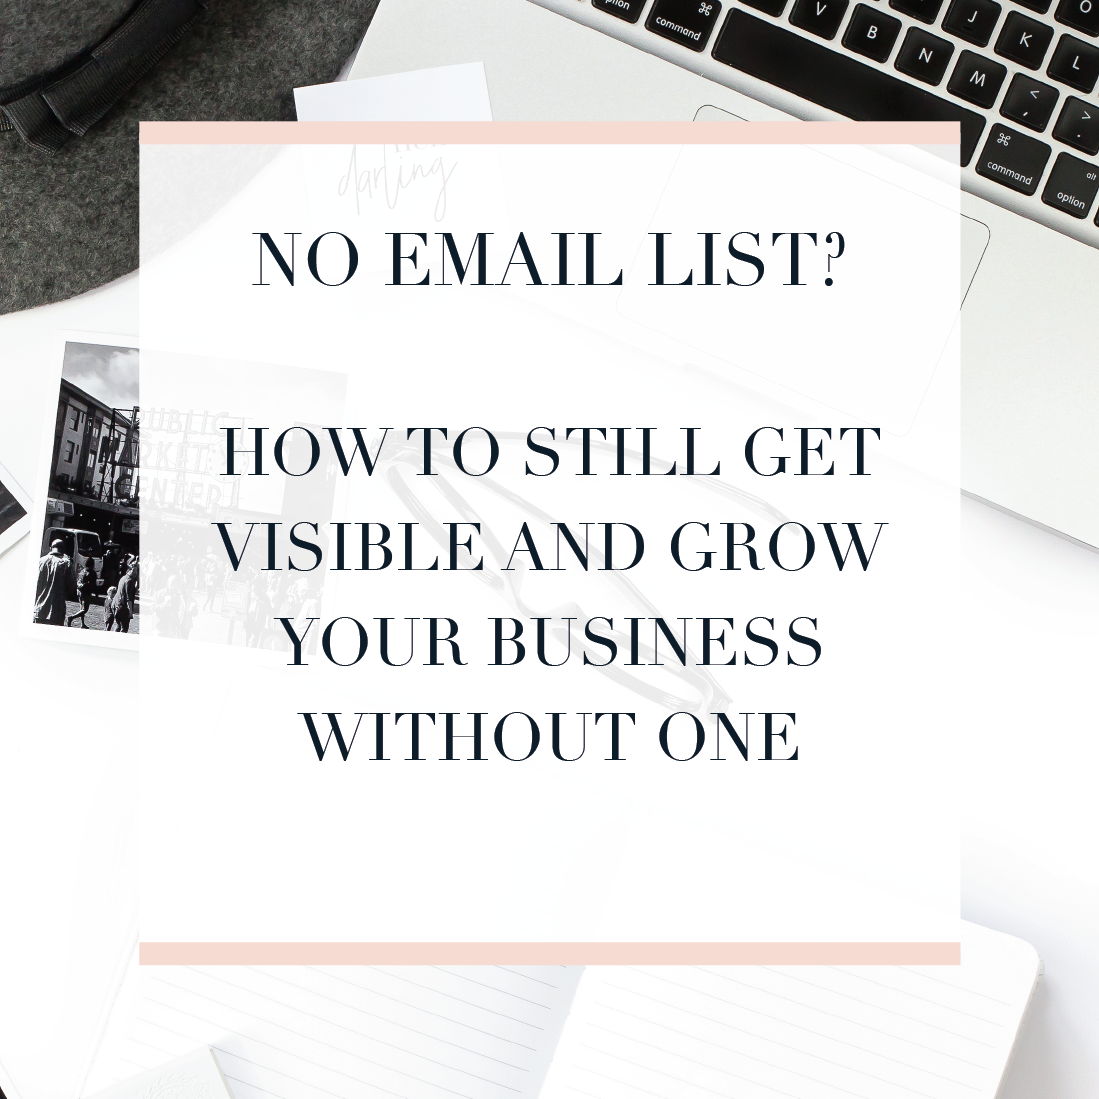 No email list? How to still get visible and grow your business without one